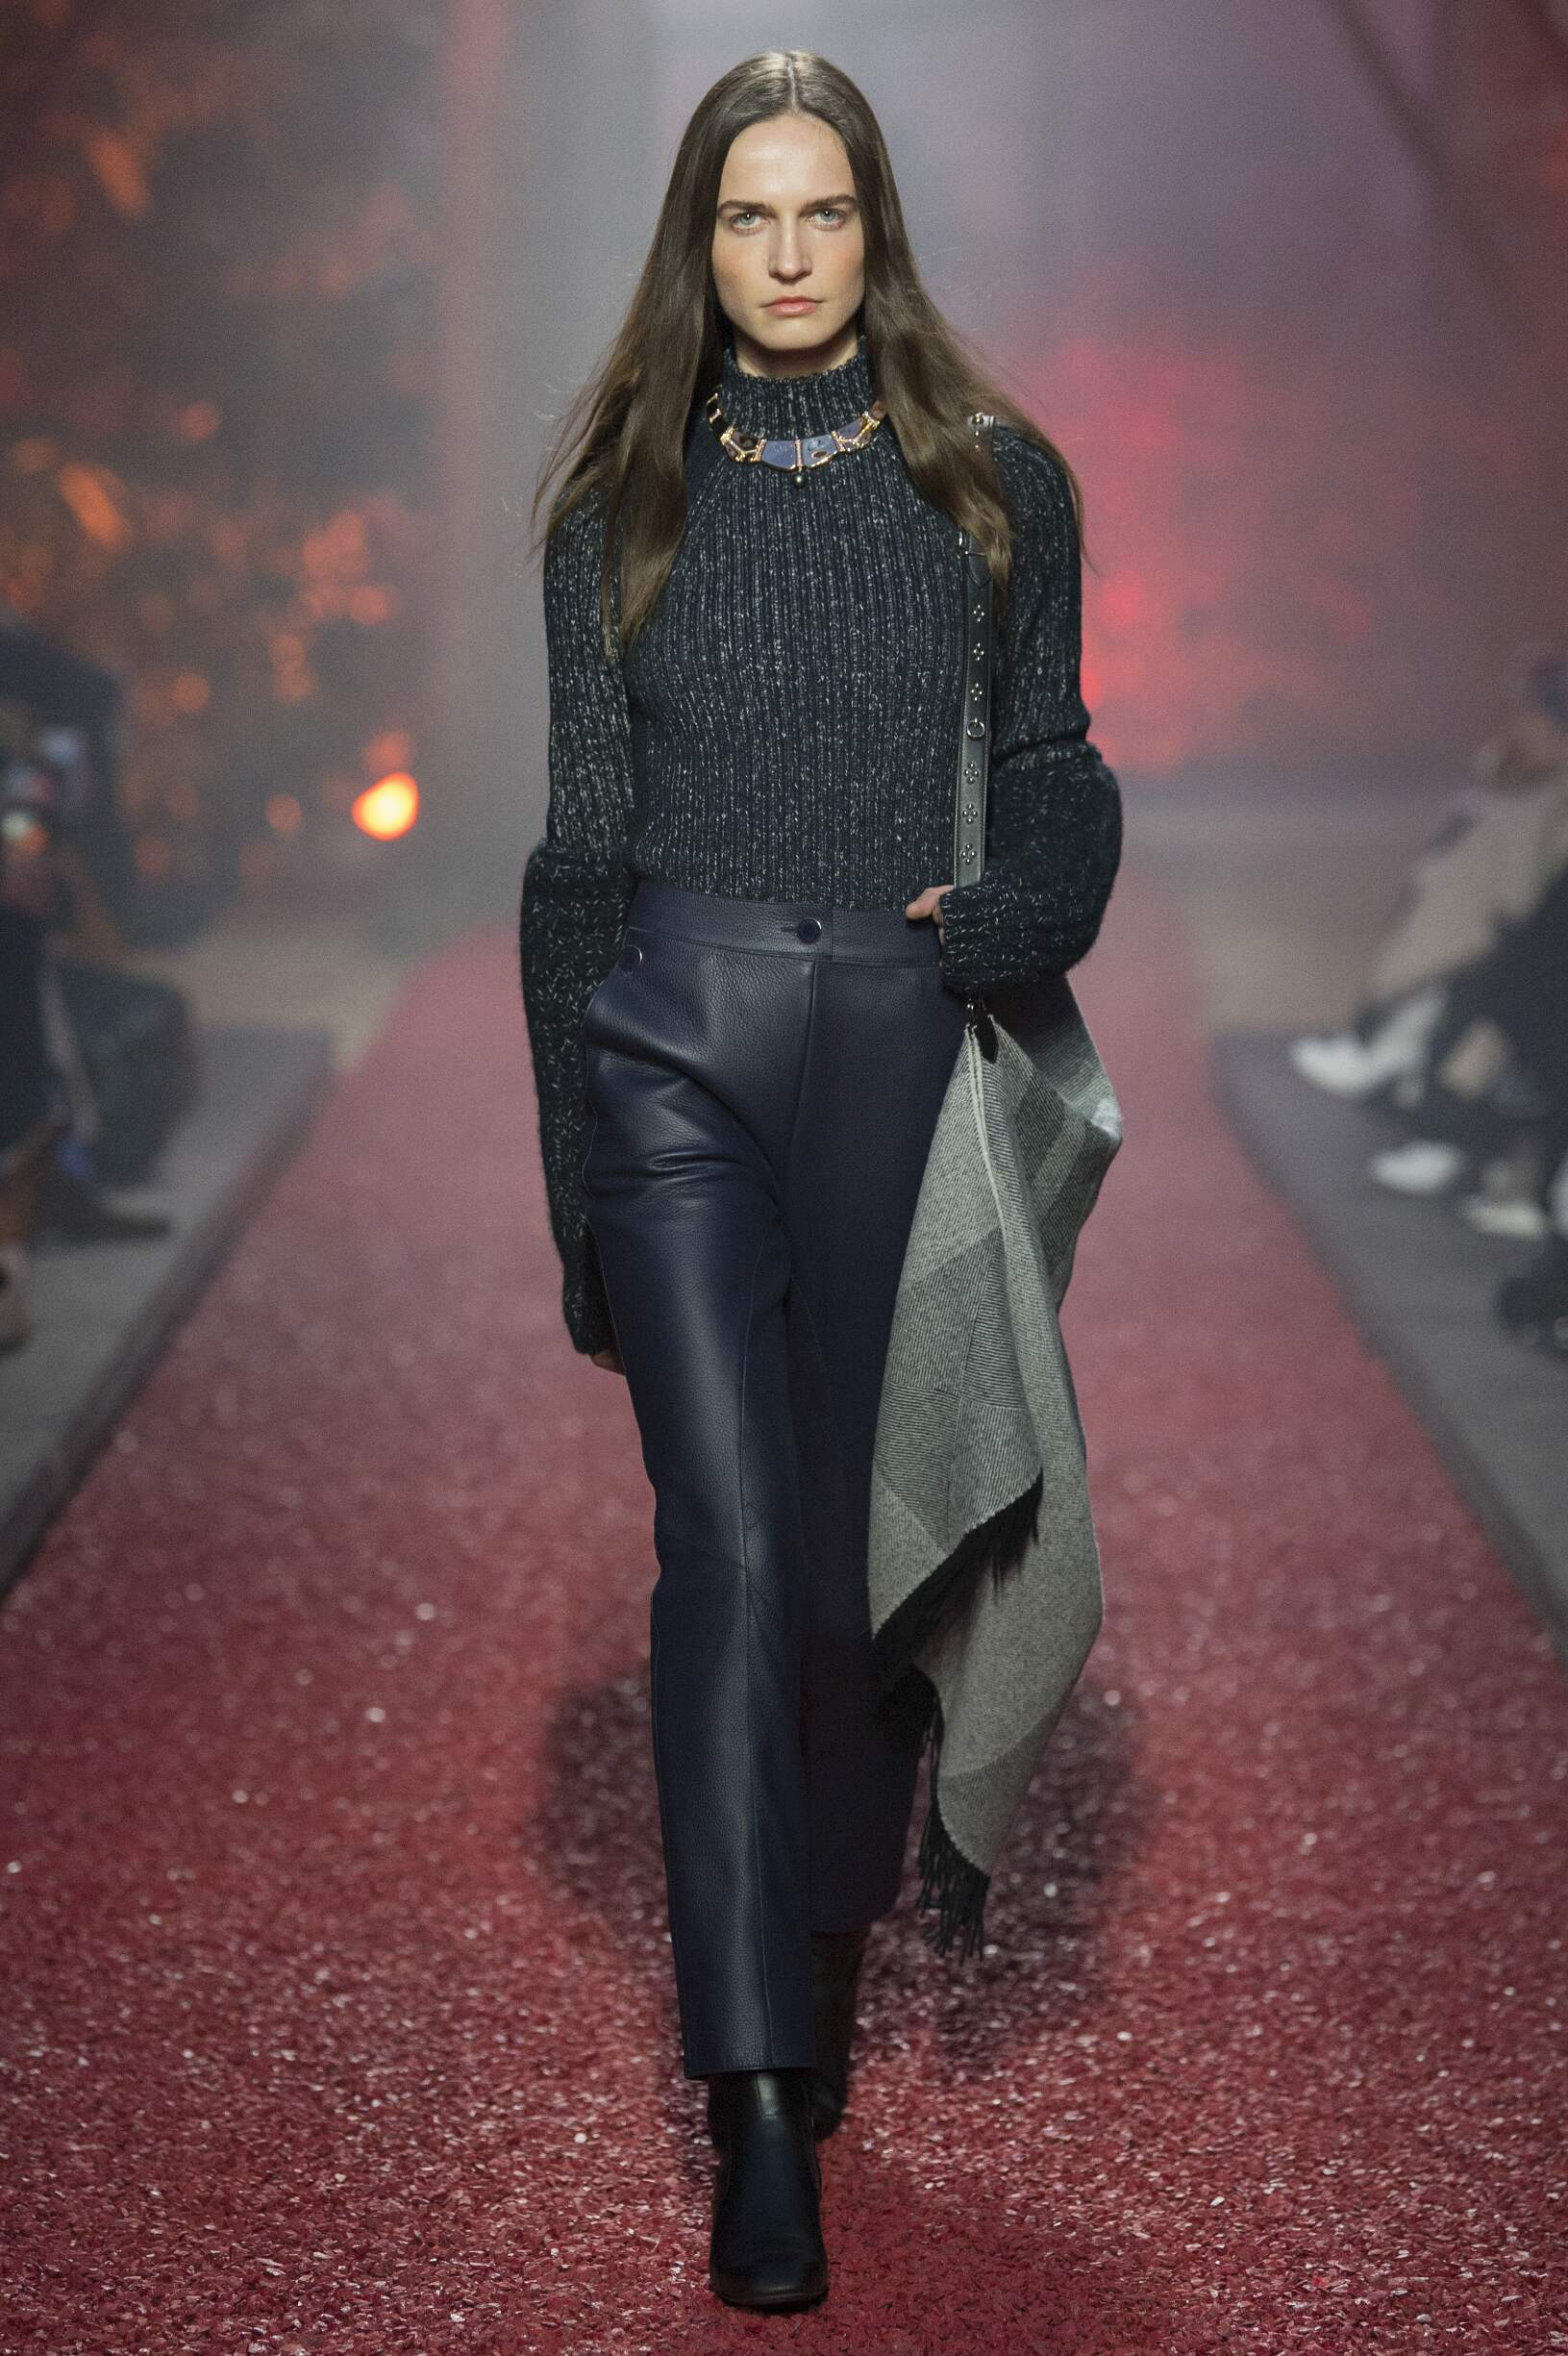 Woman FW 2018-19 Fashion Show Hermès